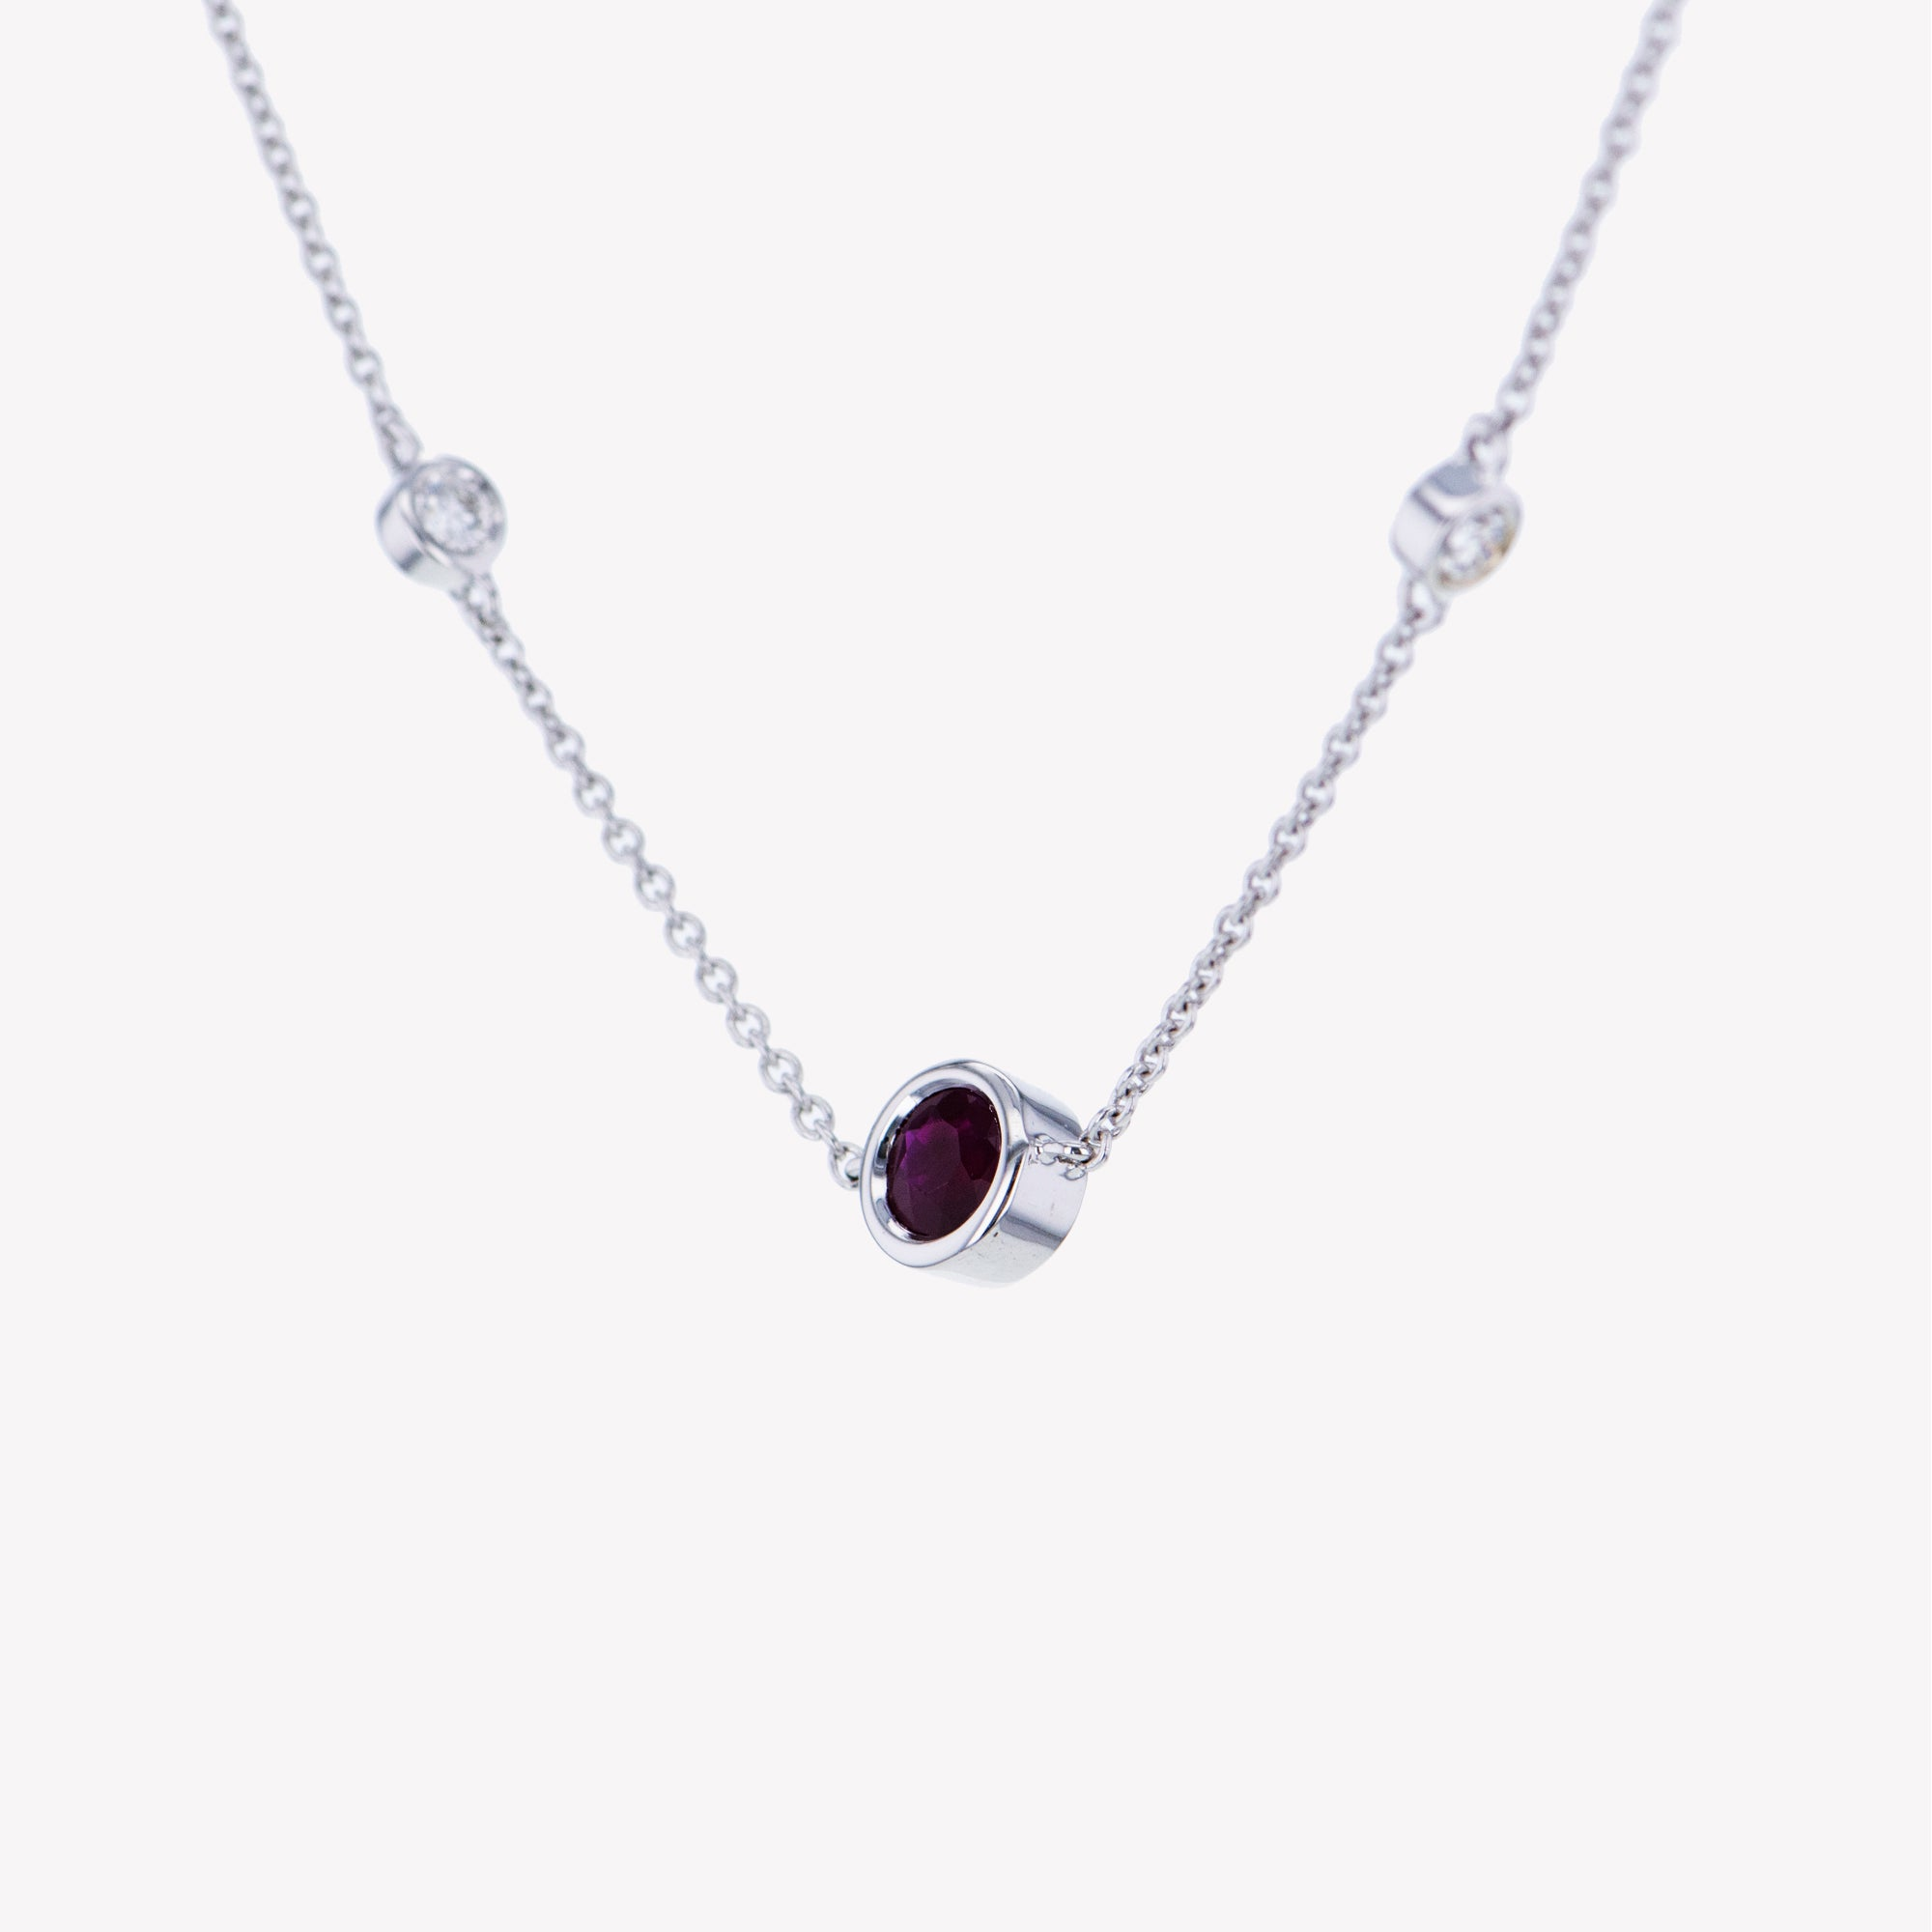 18K W/G Ruby Diamond Pendant With Chain